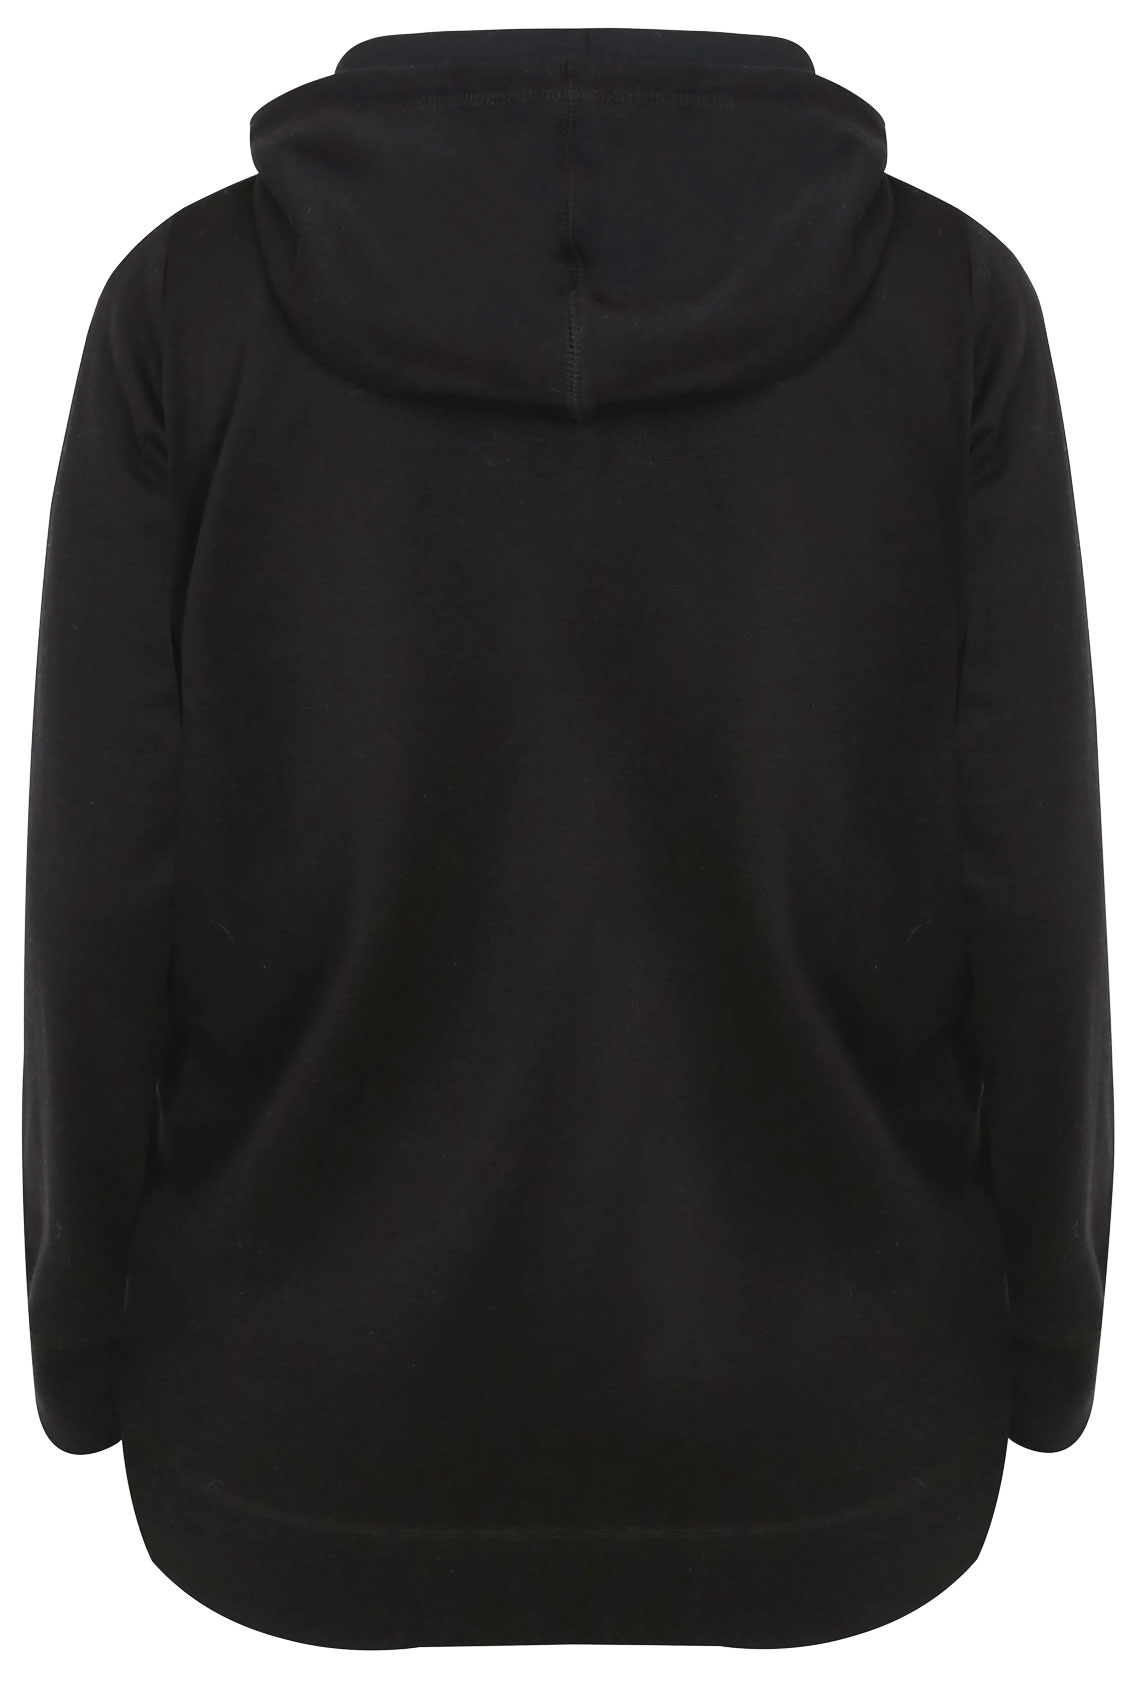 Shop for black zip hoodie online at Target. Free shipping on purchases over $35 and save 5% every day with your Target REDcard.